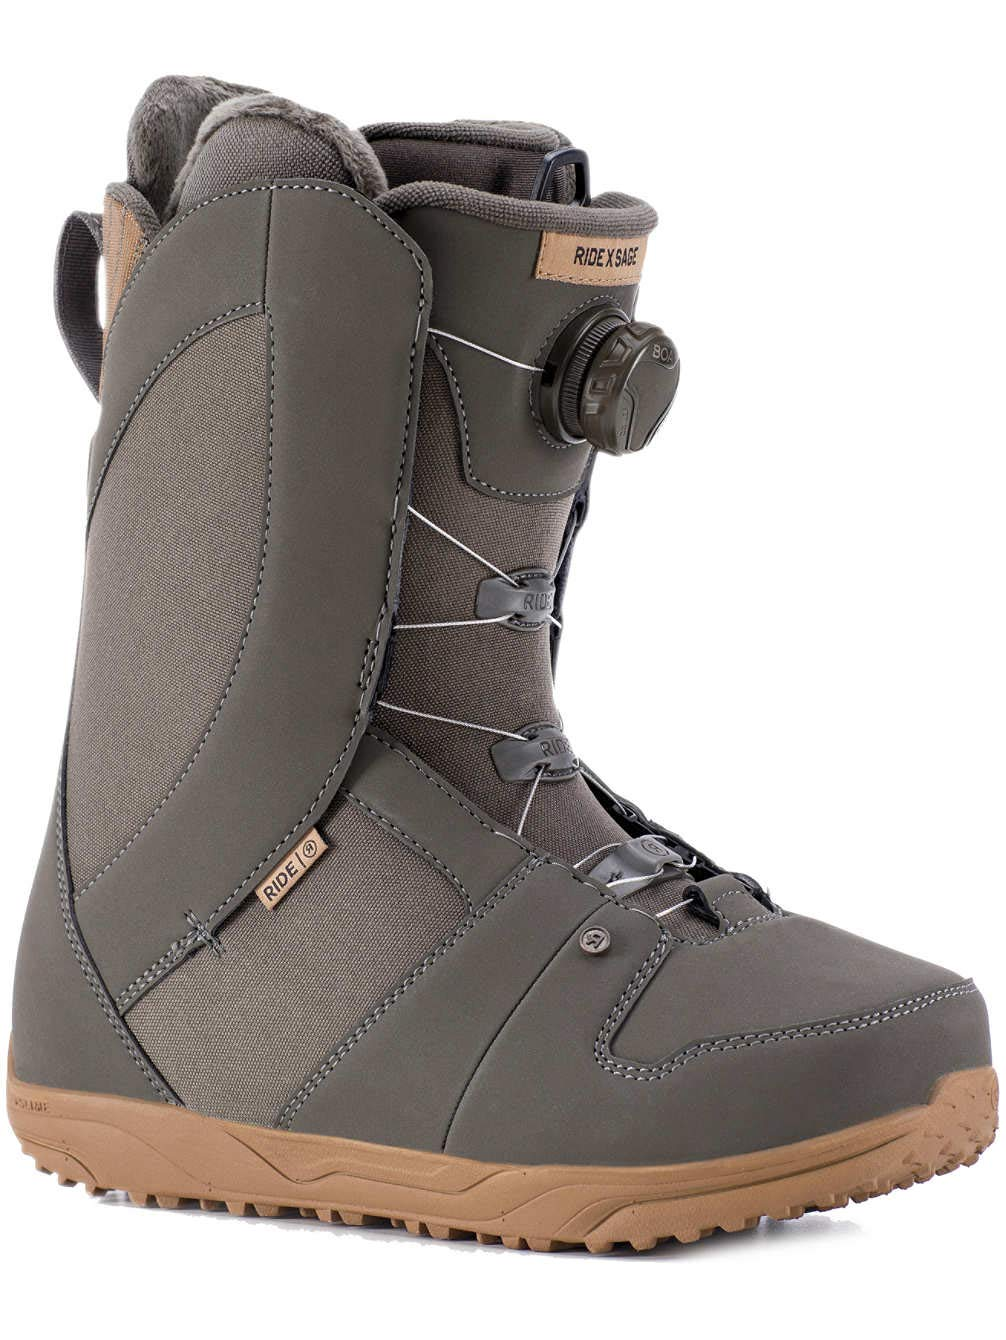 Ride Sage 2019 Snowboard Boot - Women's Taupe 6.5 by Ride